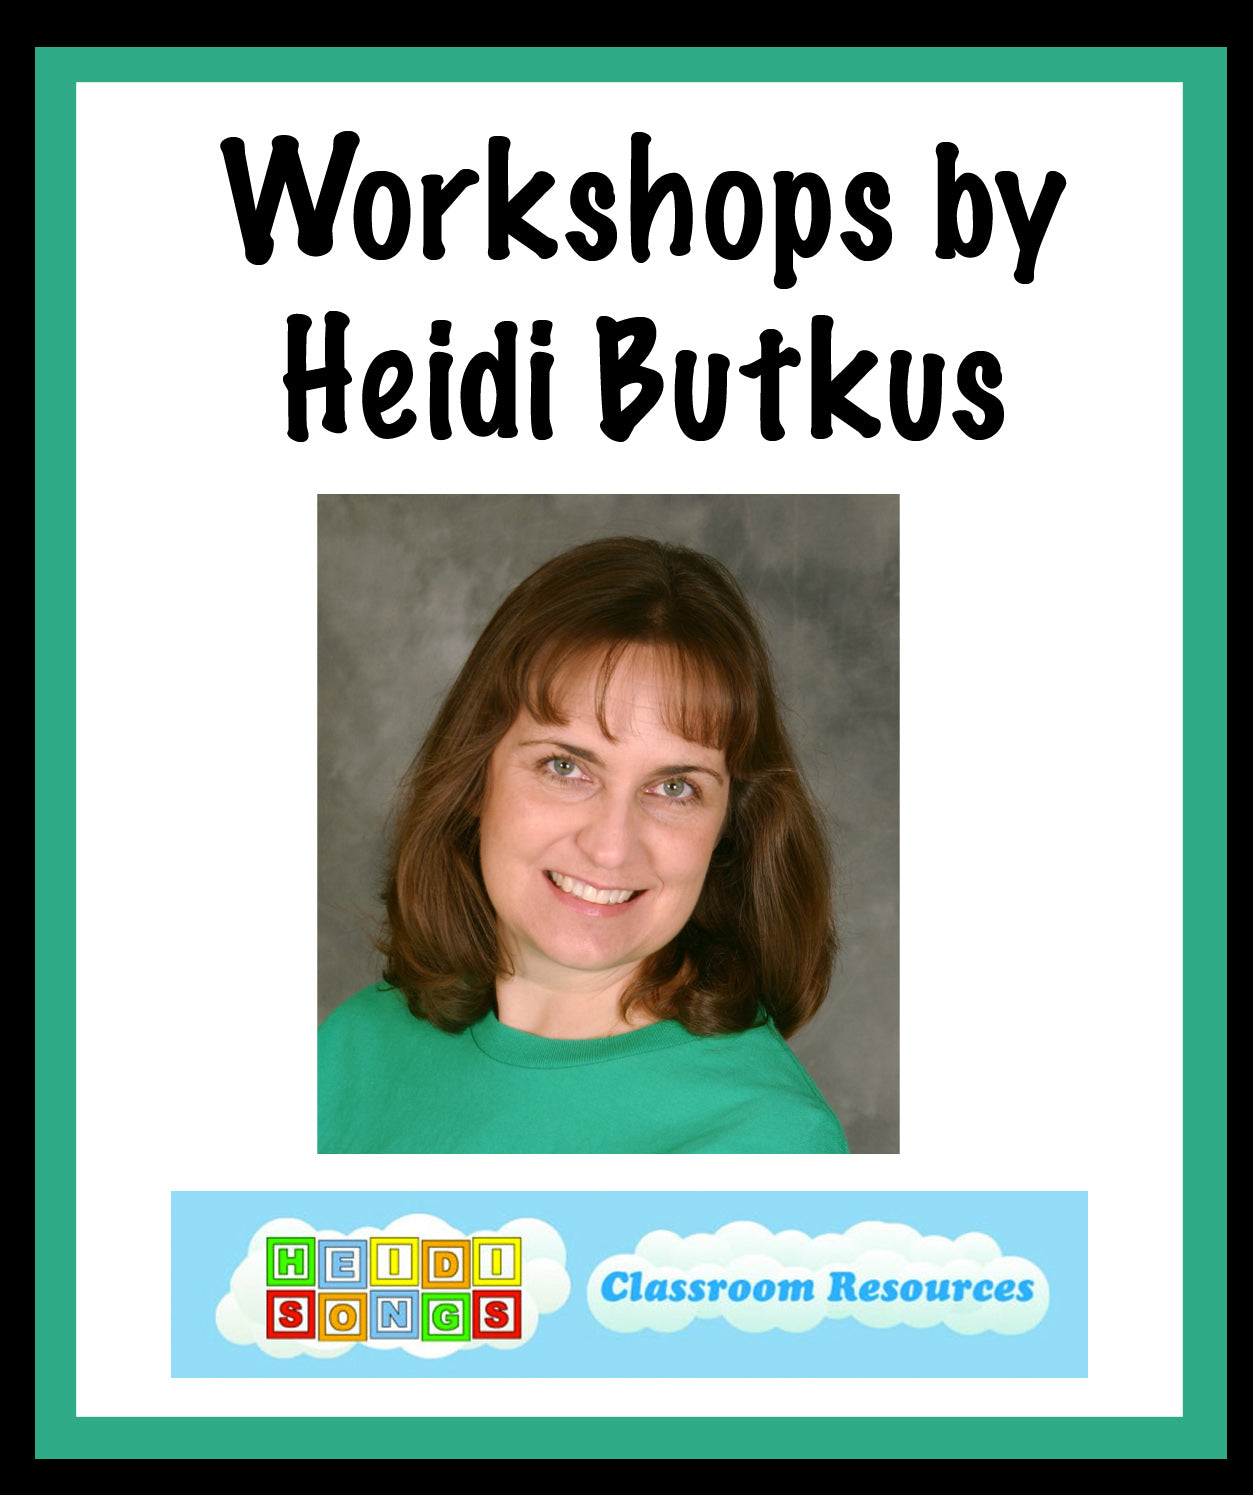 Workshops by Heidi Butkus